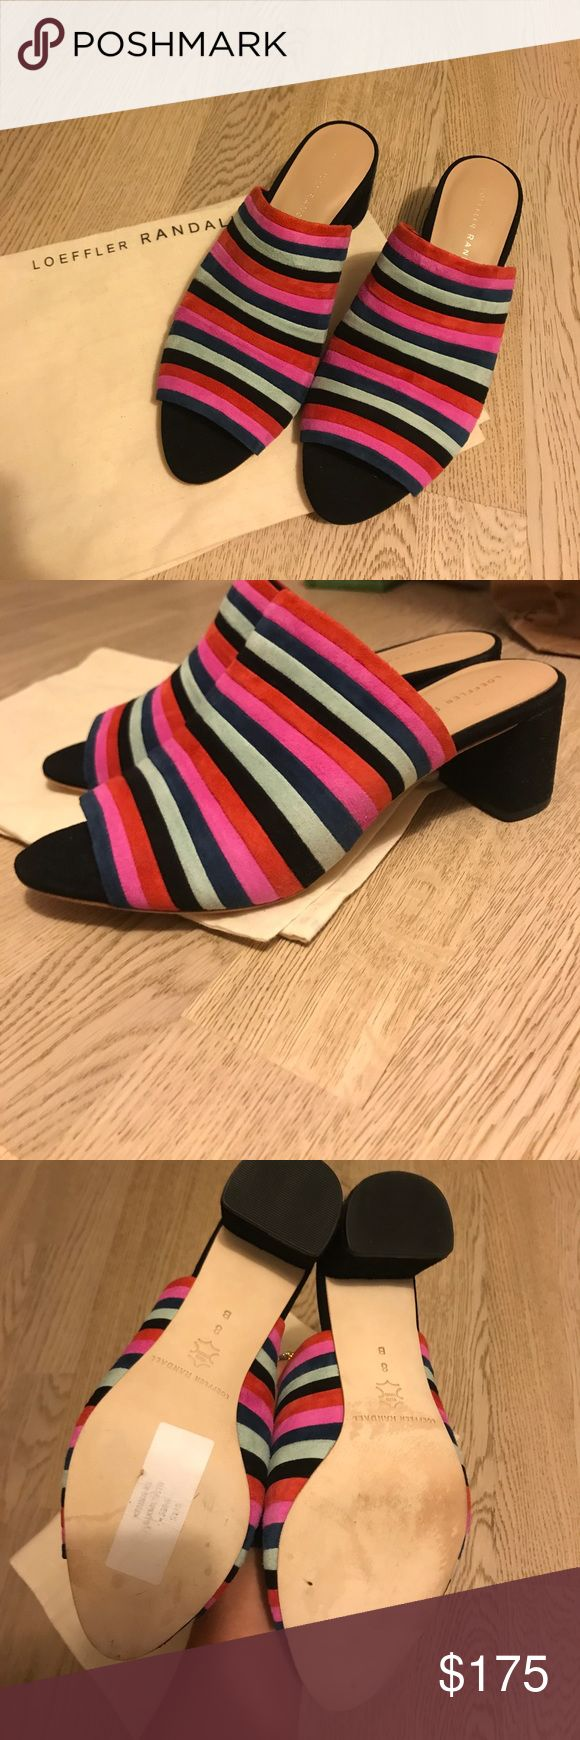 """Loeffler Randall suede striped heeled sandals Never ever worn! Bought on sale but they don't fit me well. Soooo cute. Amazing for summer. Beautiful quality and great style. 2"""" heel which is totally comfortable. Loeffler Randall Shoes Mules & Clogs"""